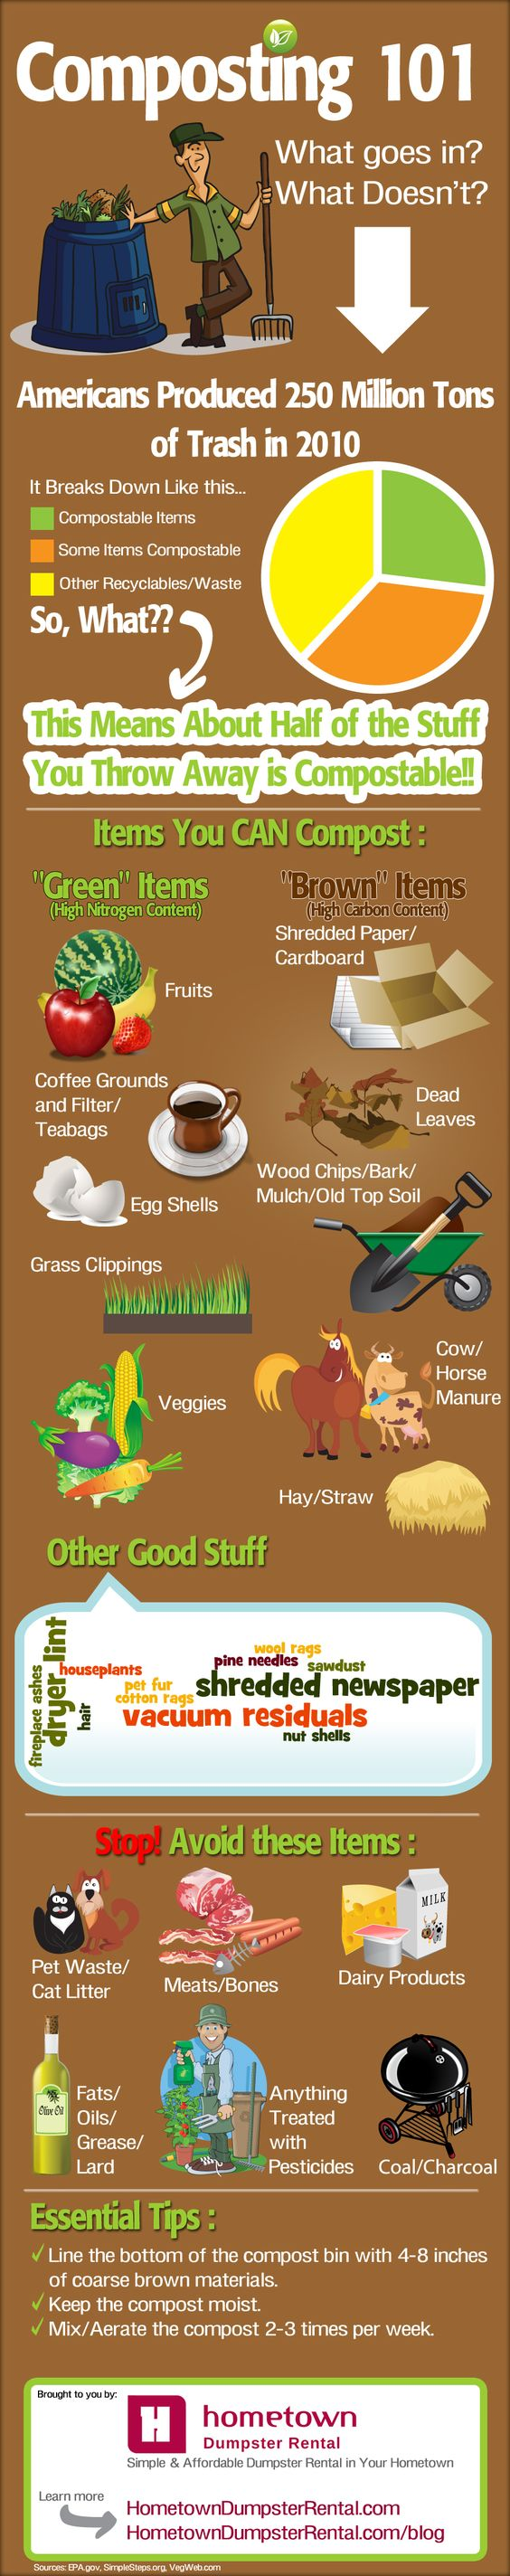 Gardening Info-Graphic: Composting 101